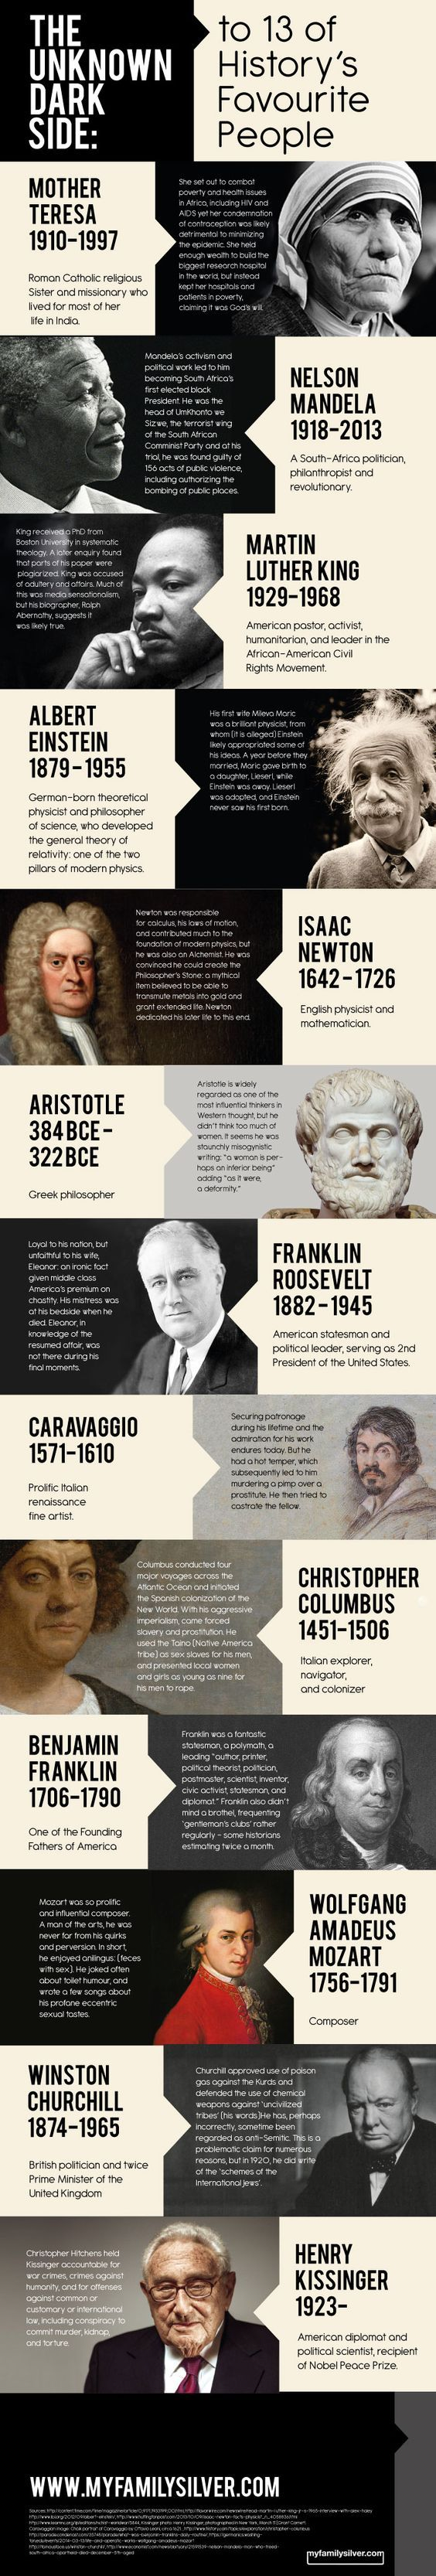 The Unknown Dark Side To 13 Of History S Favourite People Infographic History Facts History Historical Facts